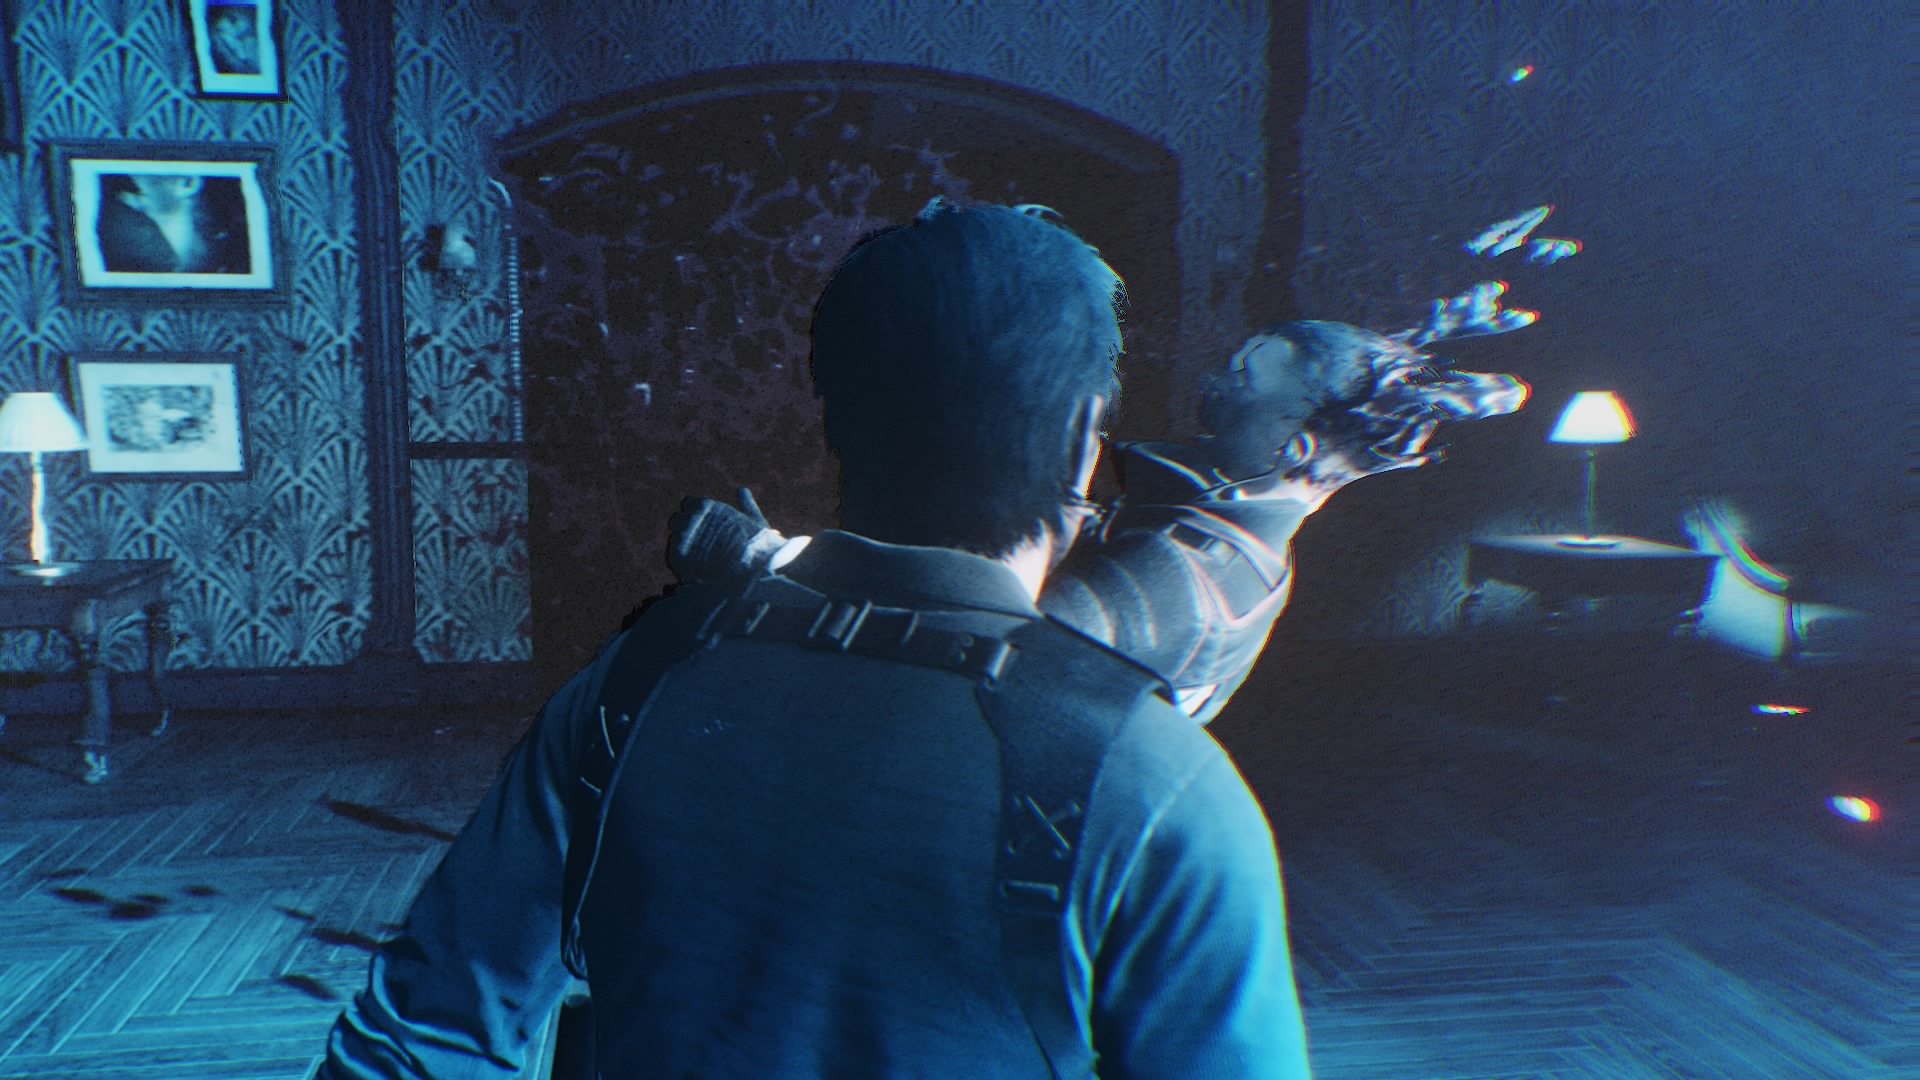 The Evil Within 2 - Evil Within 2, the